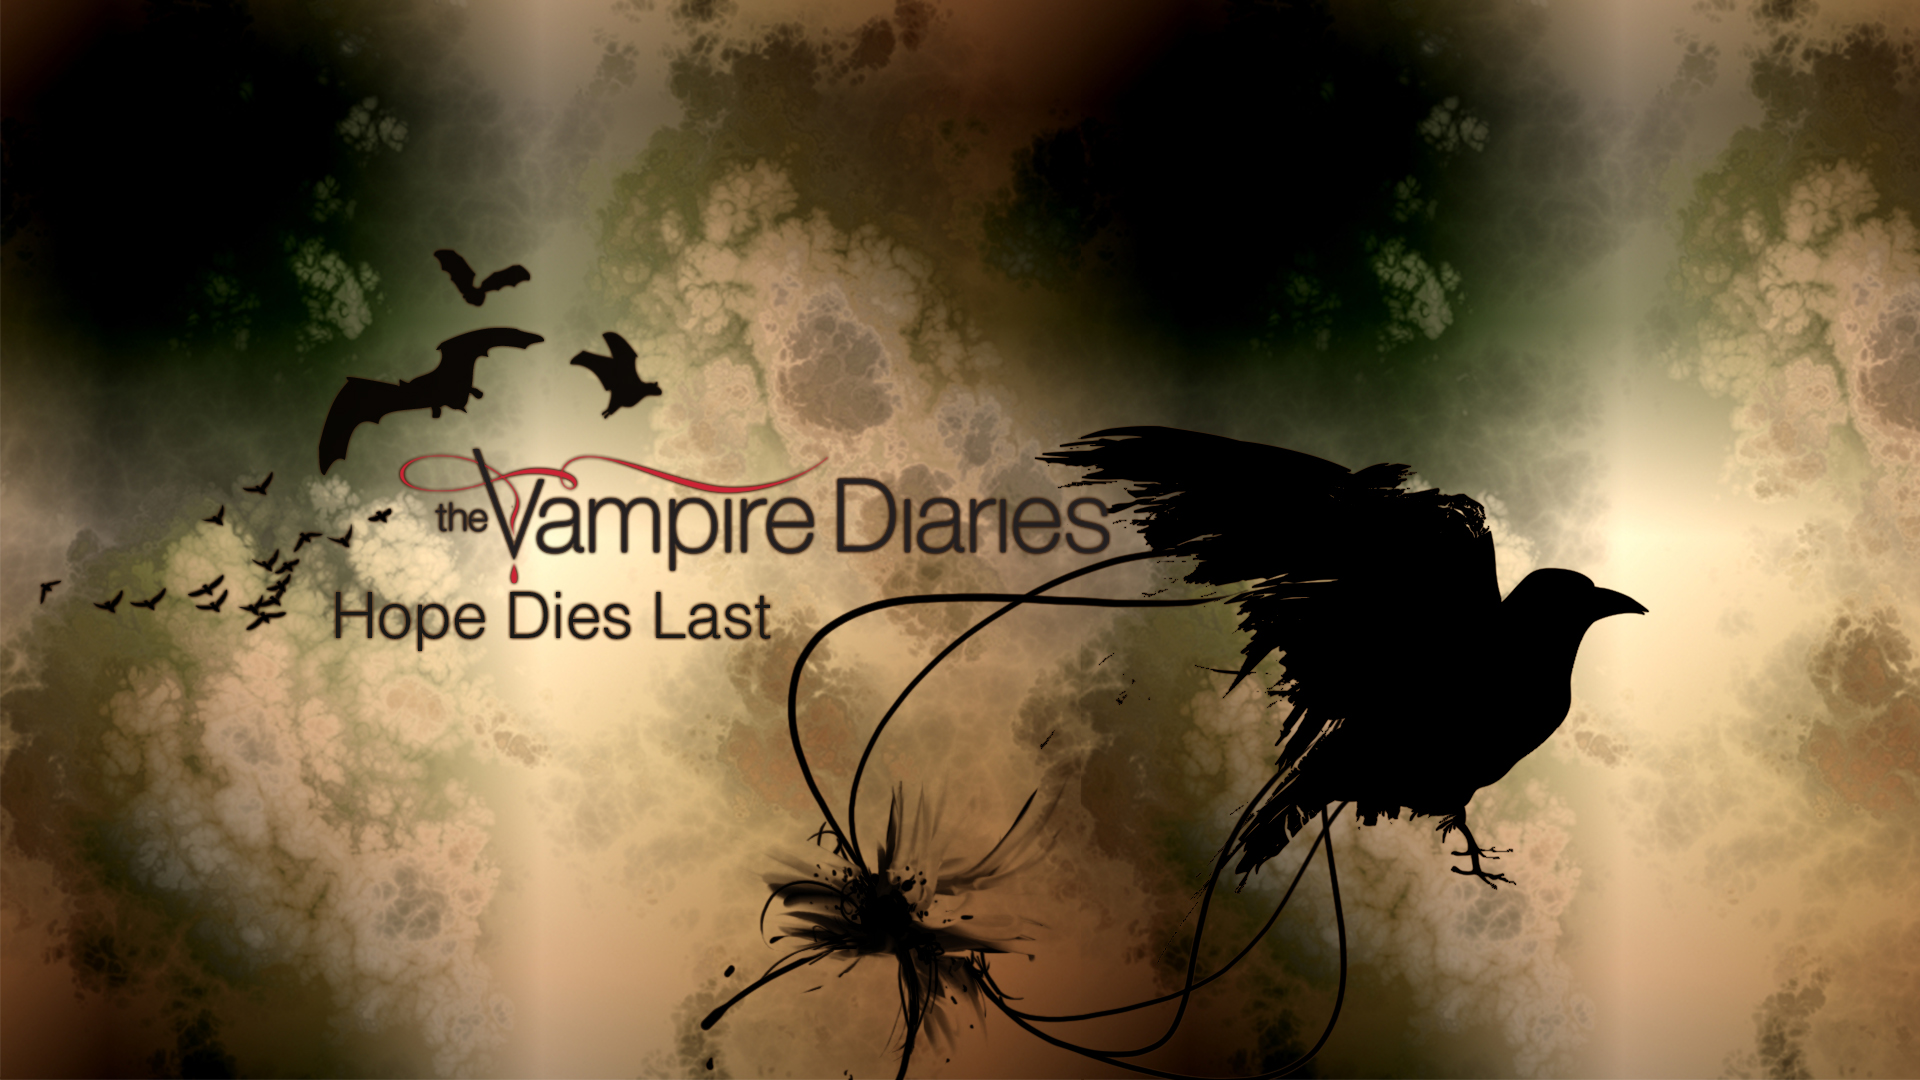 Wallpaper The Vampire Diaries: The Vampire Diaries HD Wallpapers